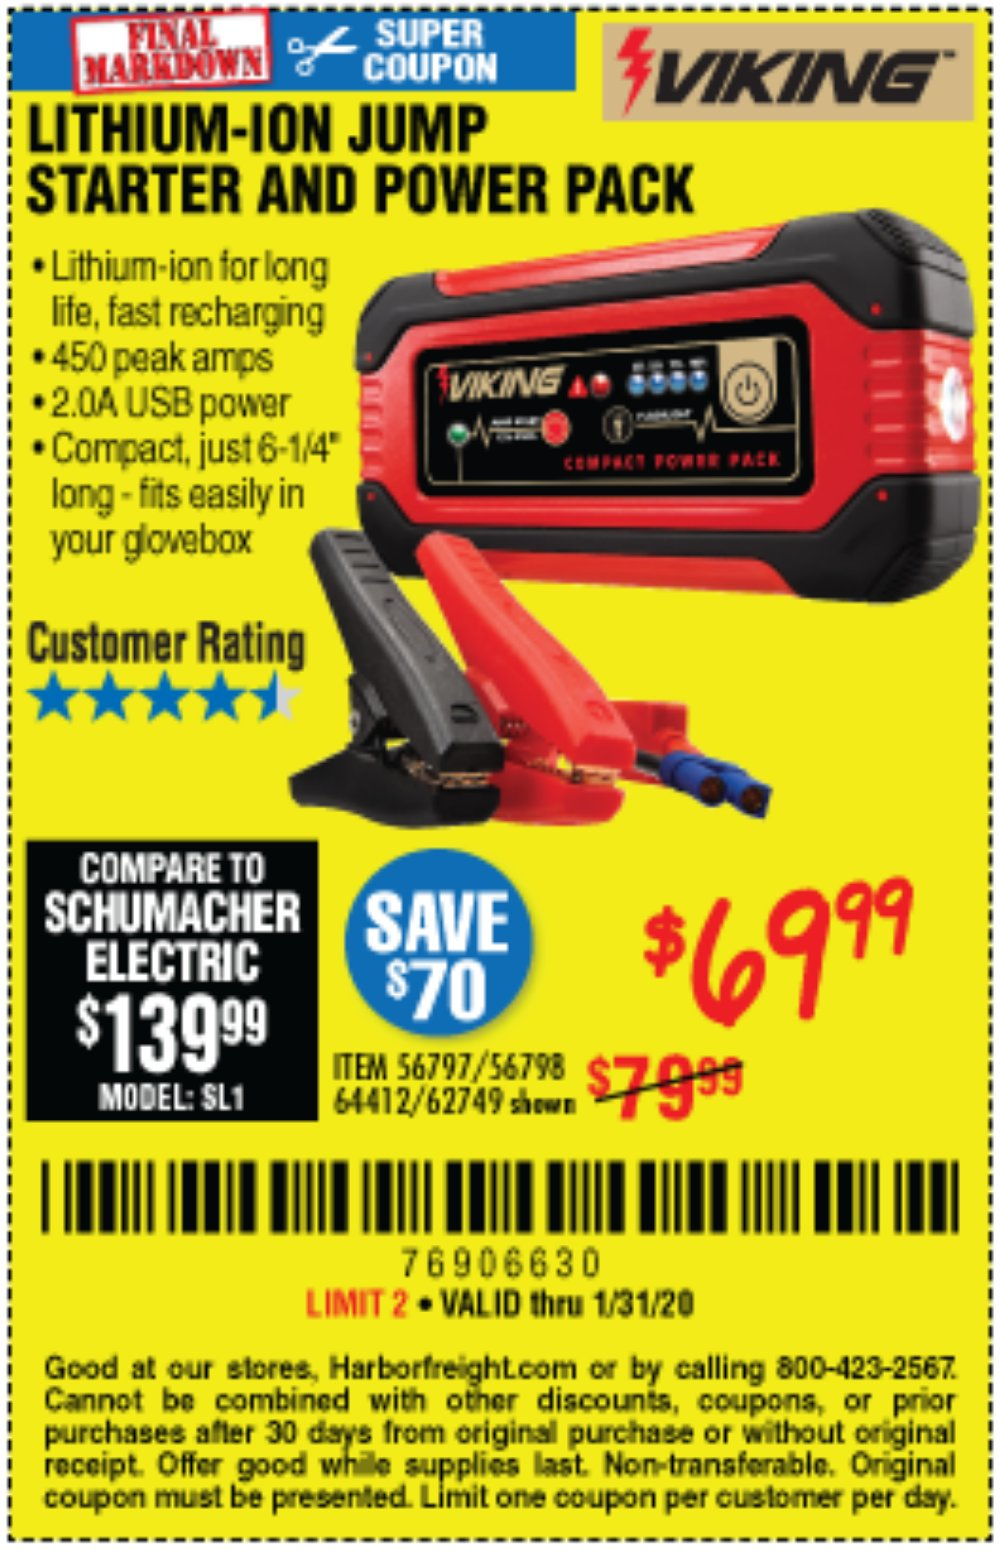 Harbor Freight Coupon, HF Coupons - Lithium Ion Jump Starter And Power Pack